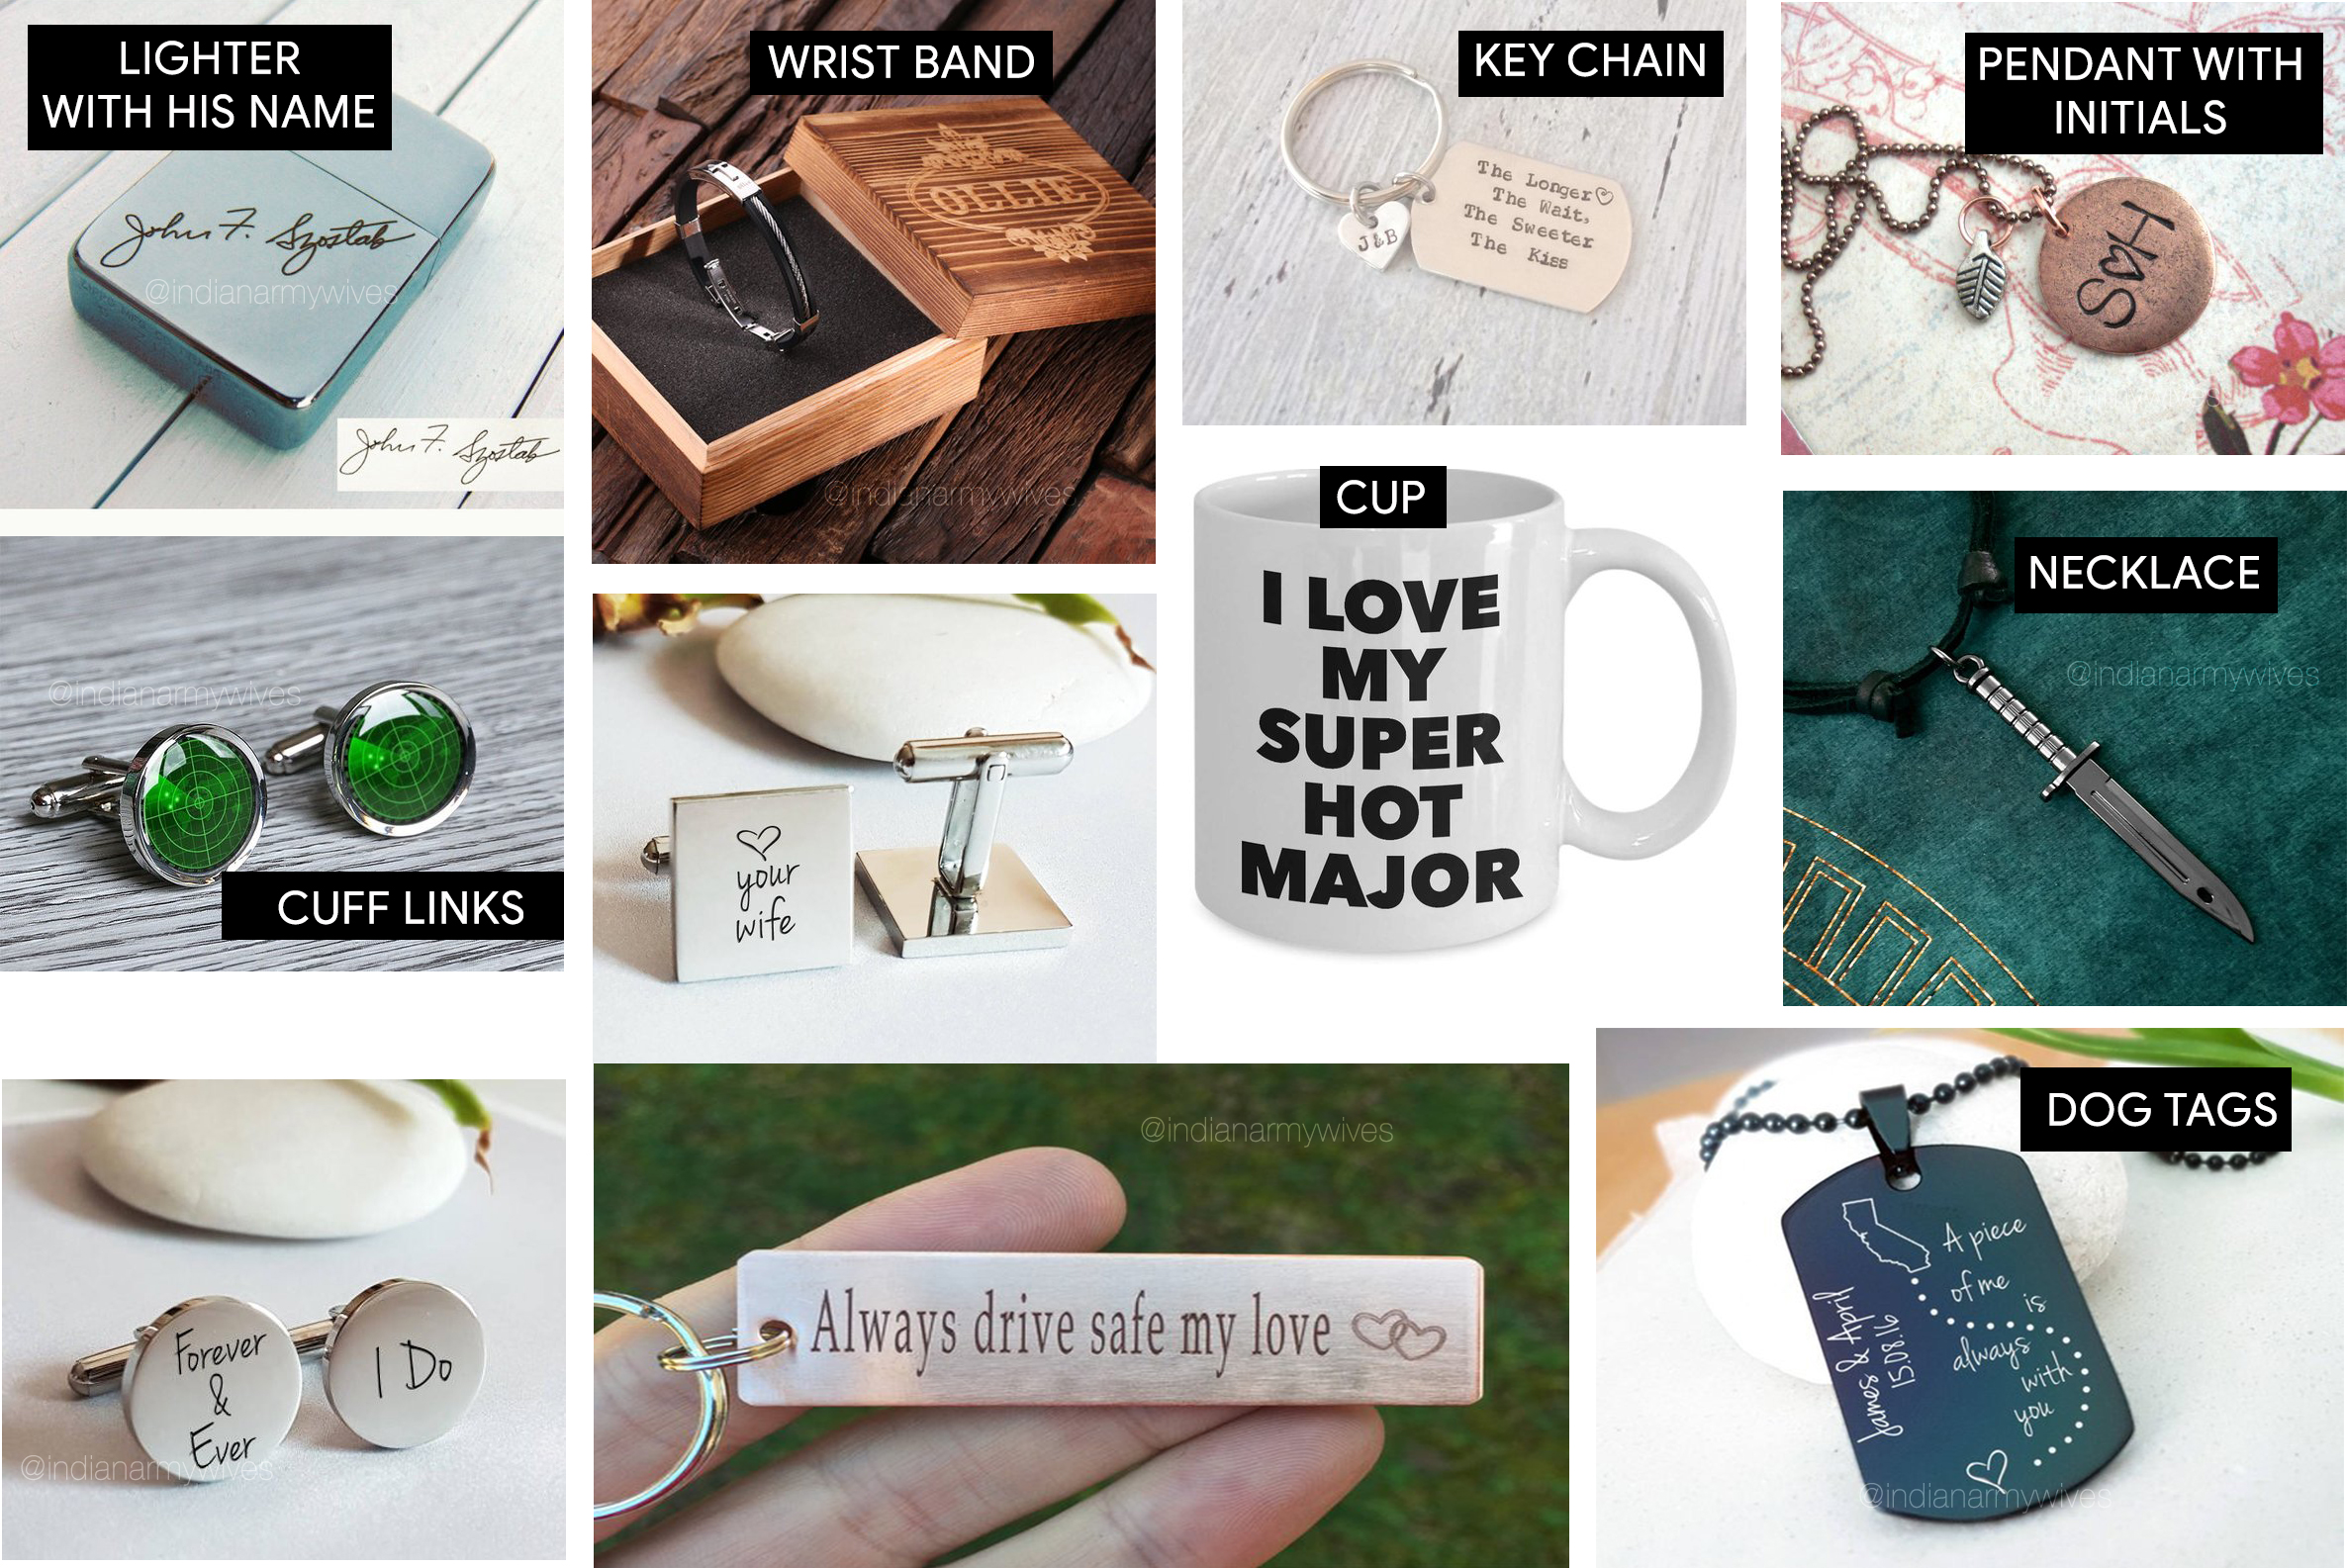 19 gift ideas for military boyfriend – Indian Army Wives